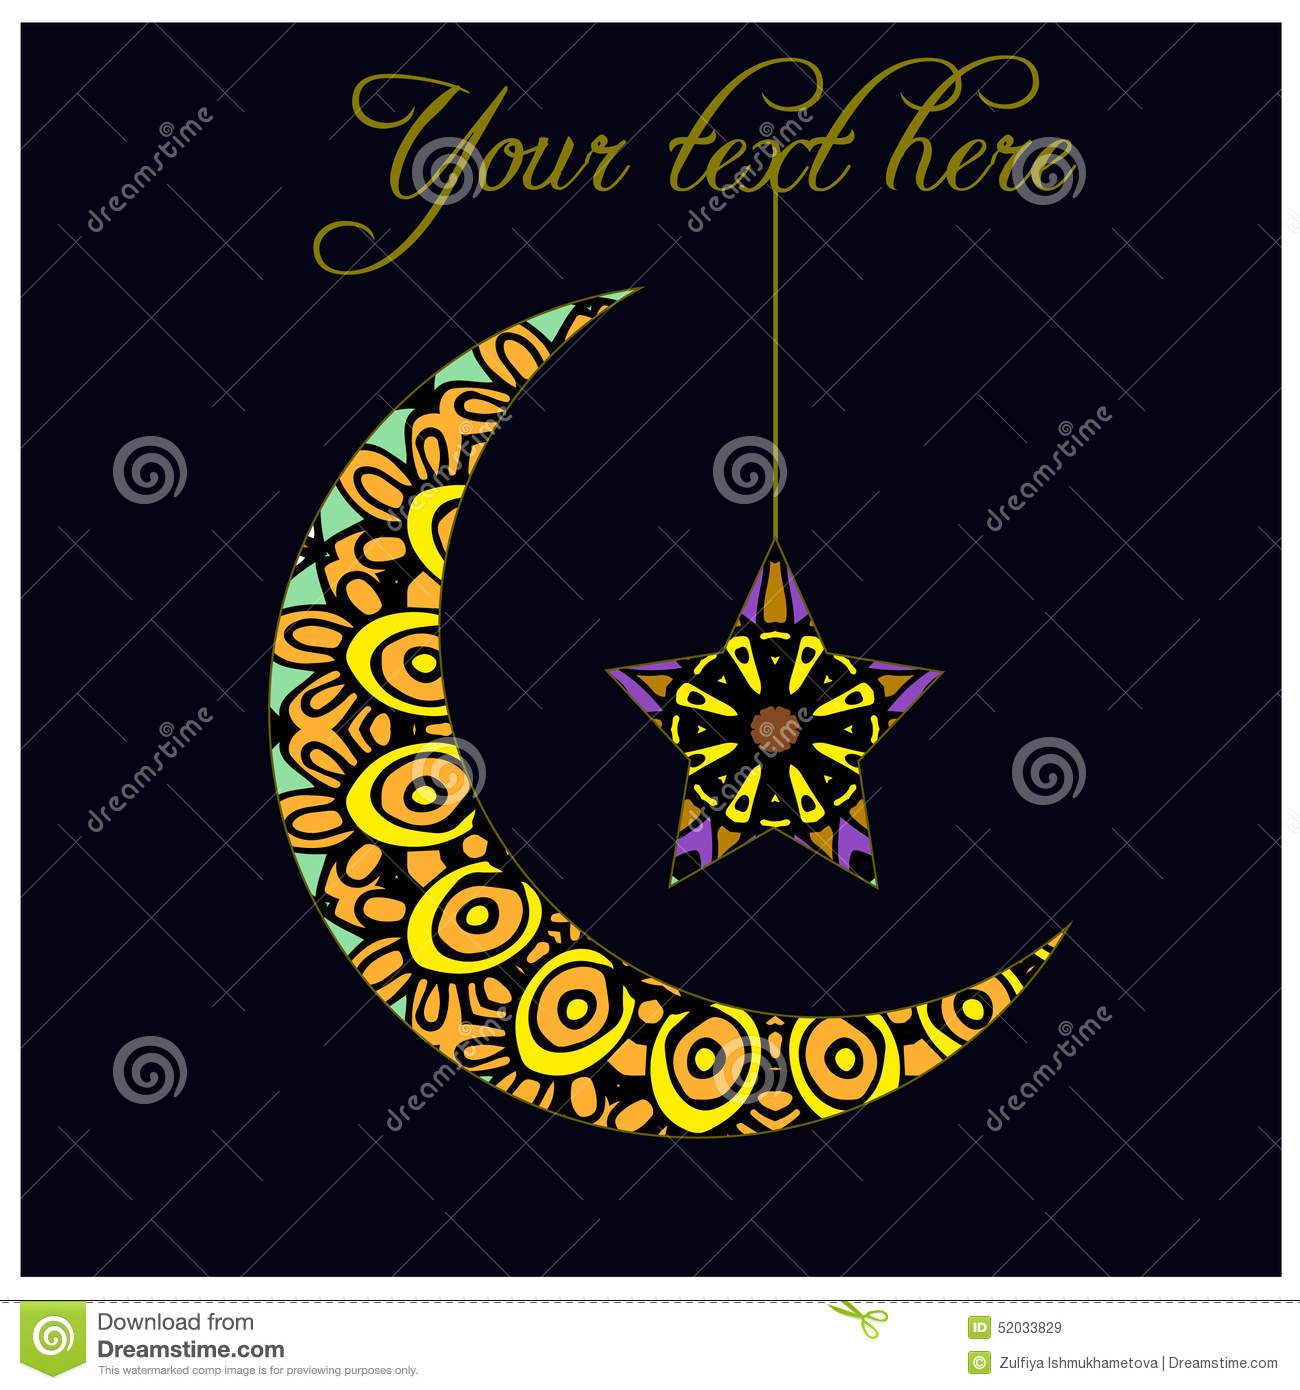 Greeting Card With Crescent Moon - A Symbol Of Islam Stock